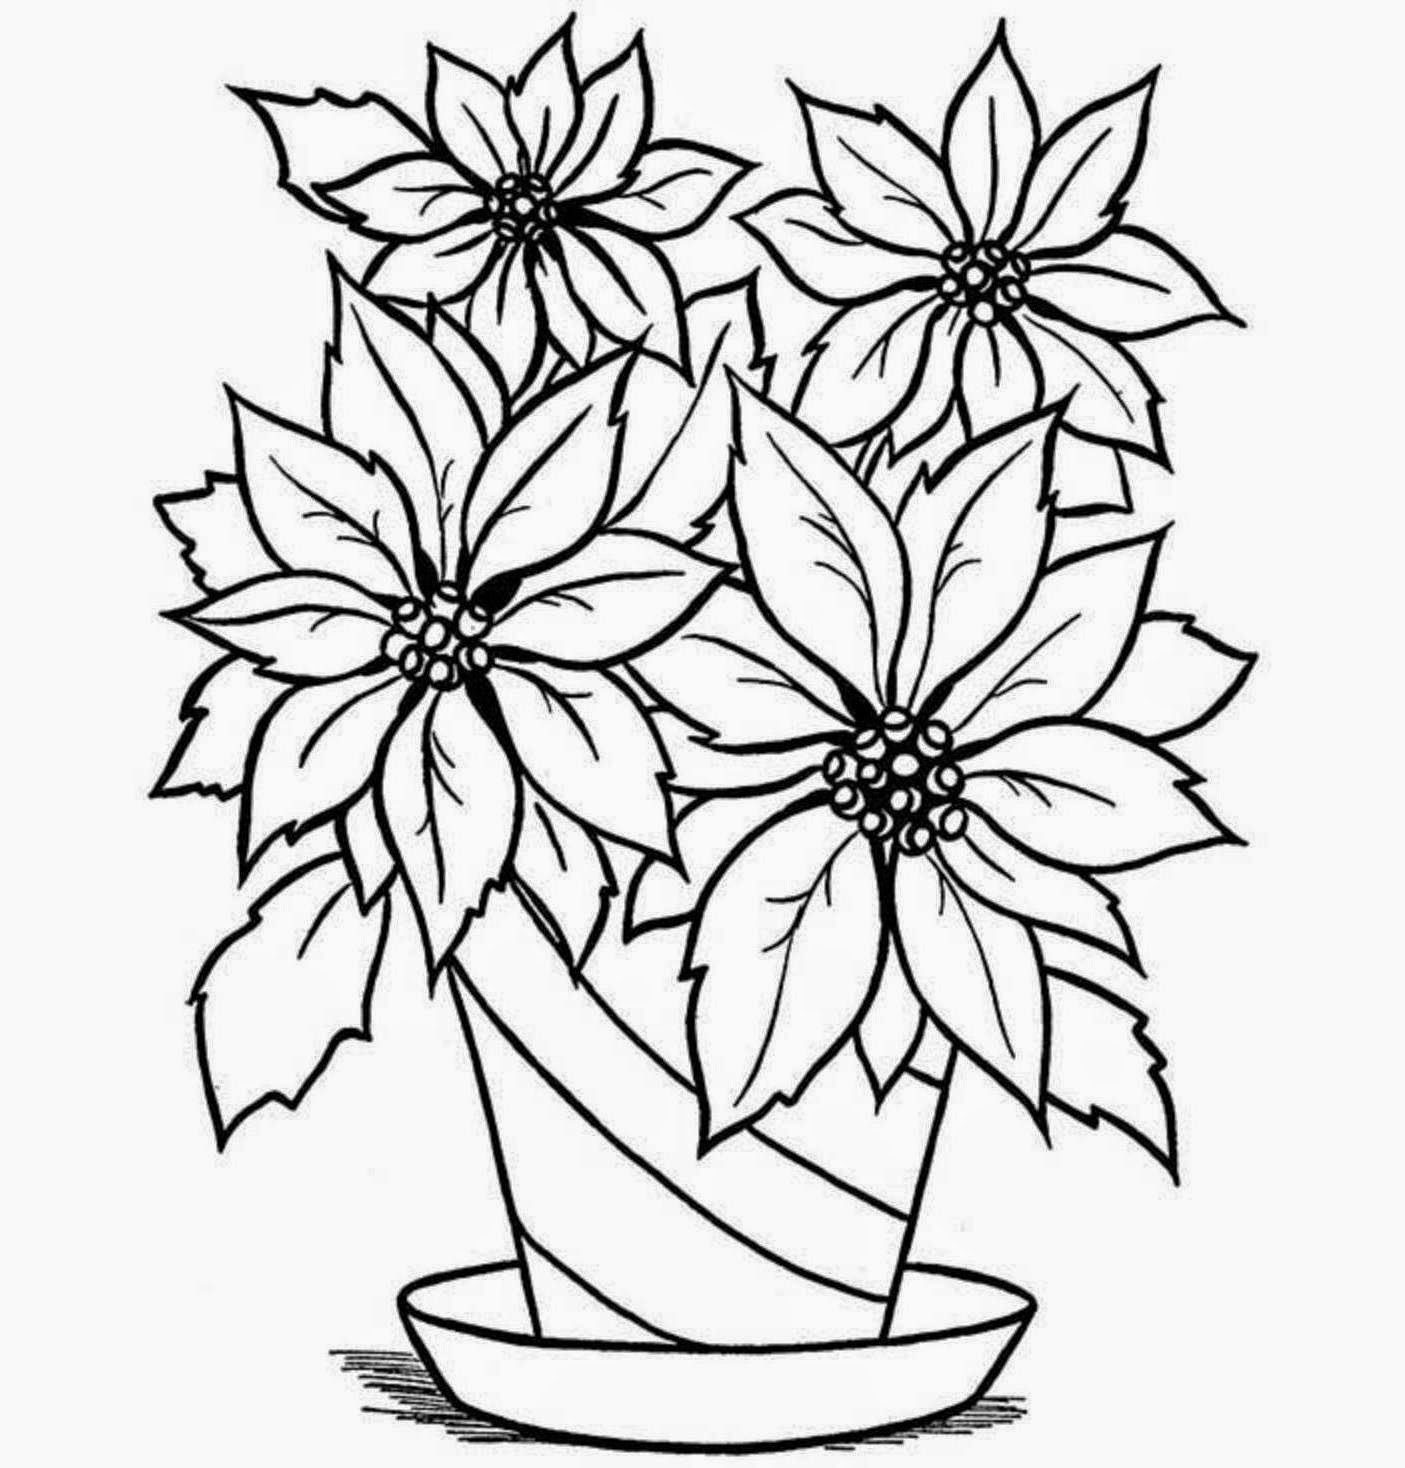 Flowers Drawing Pictures at GetDrawings.com | Free for personal use ...